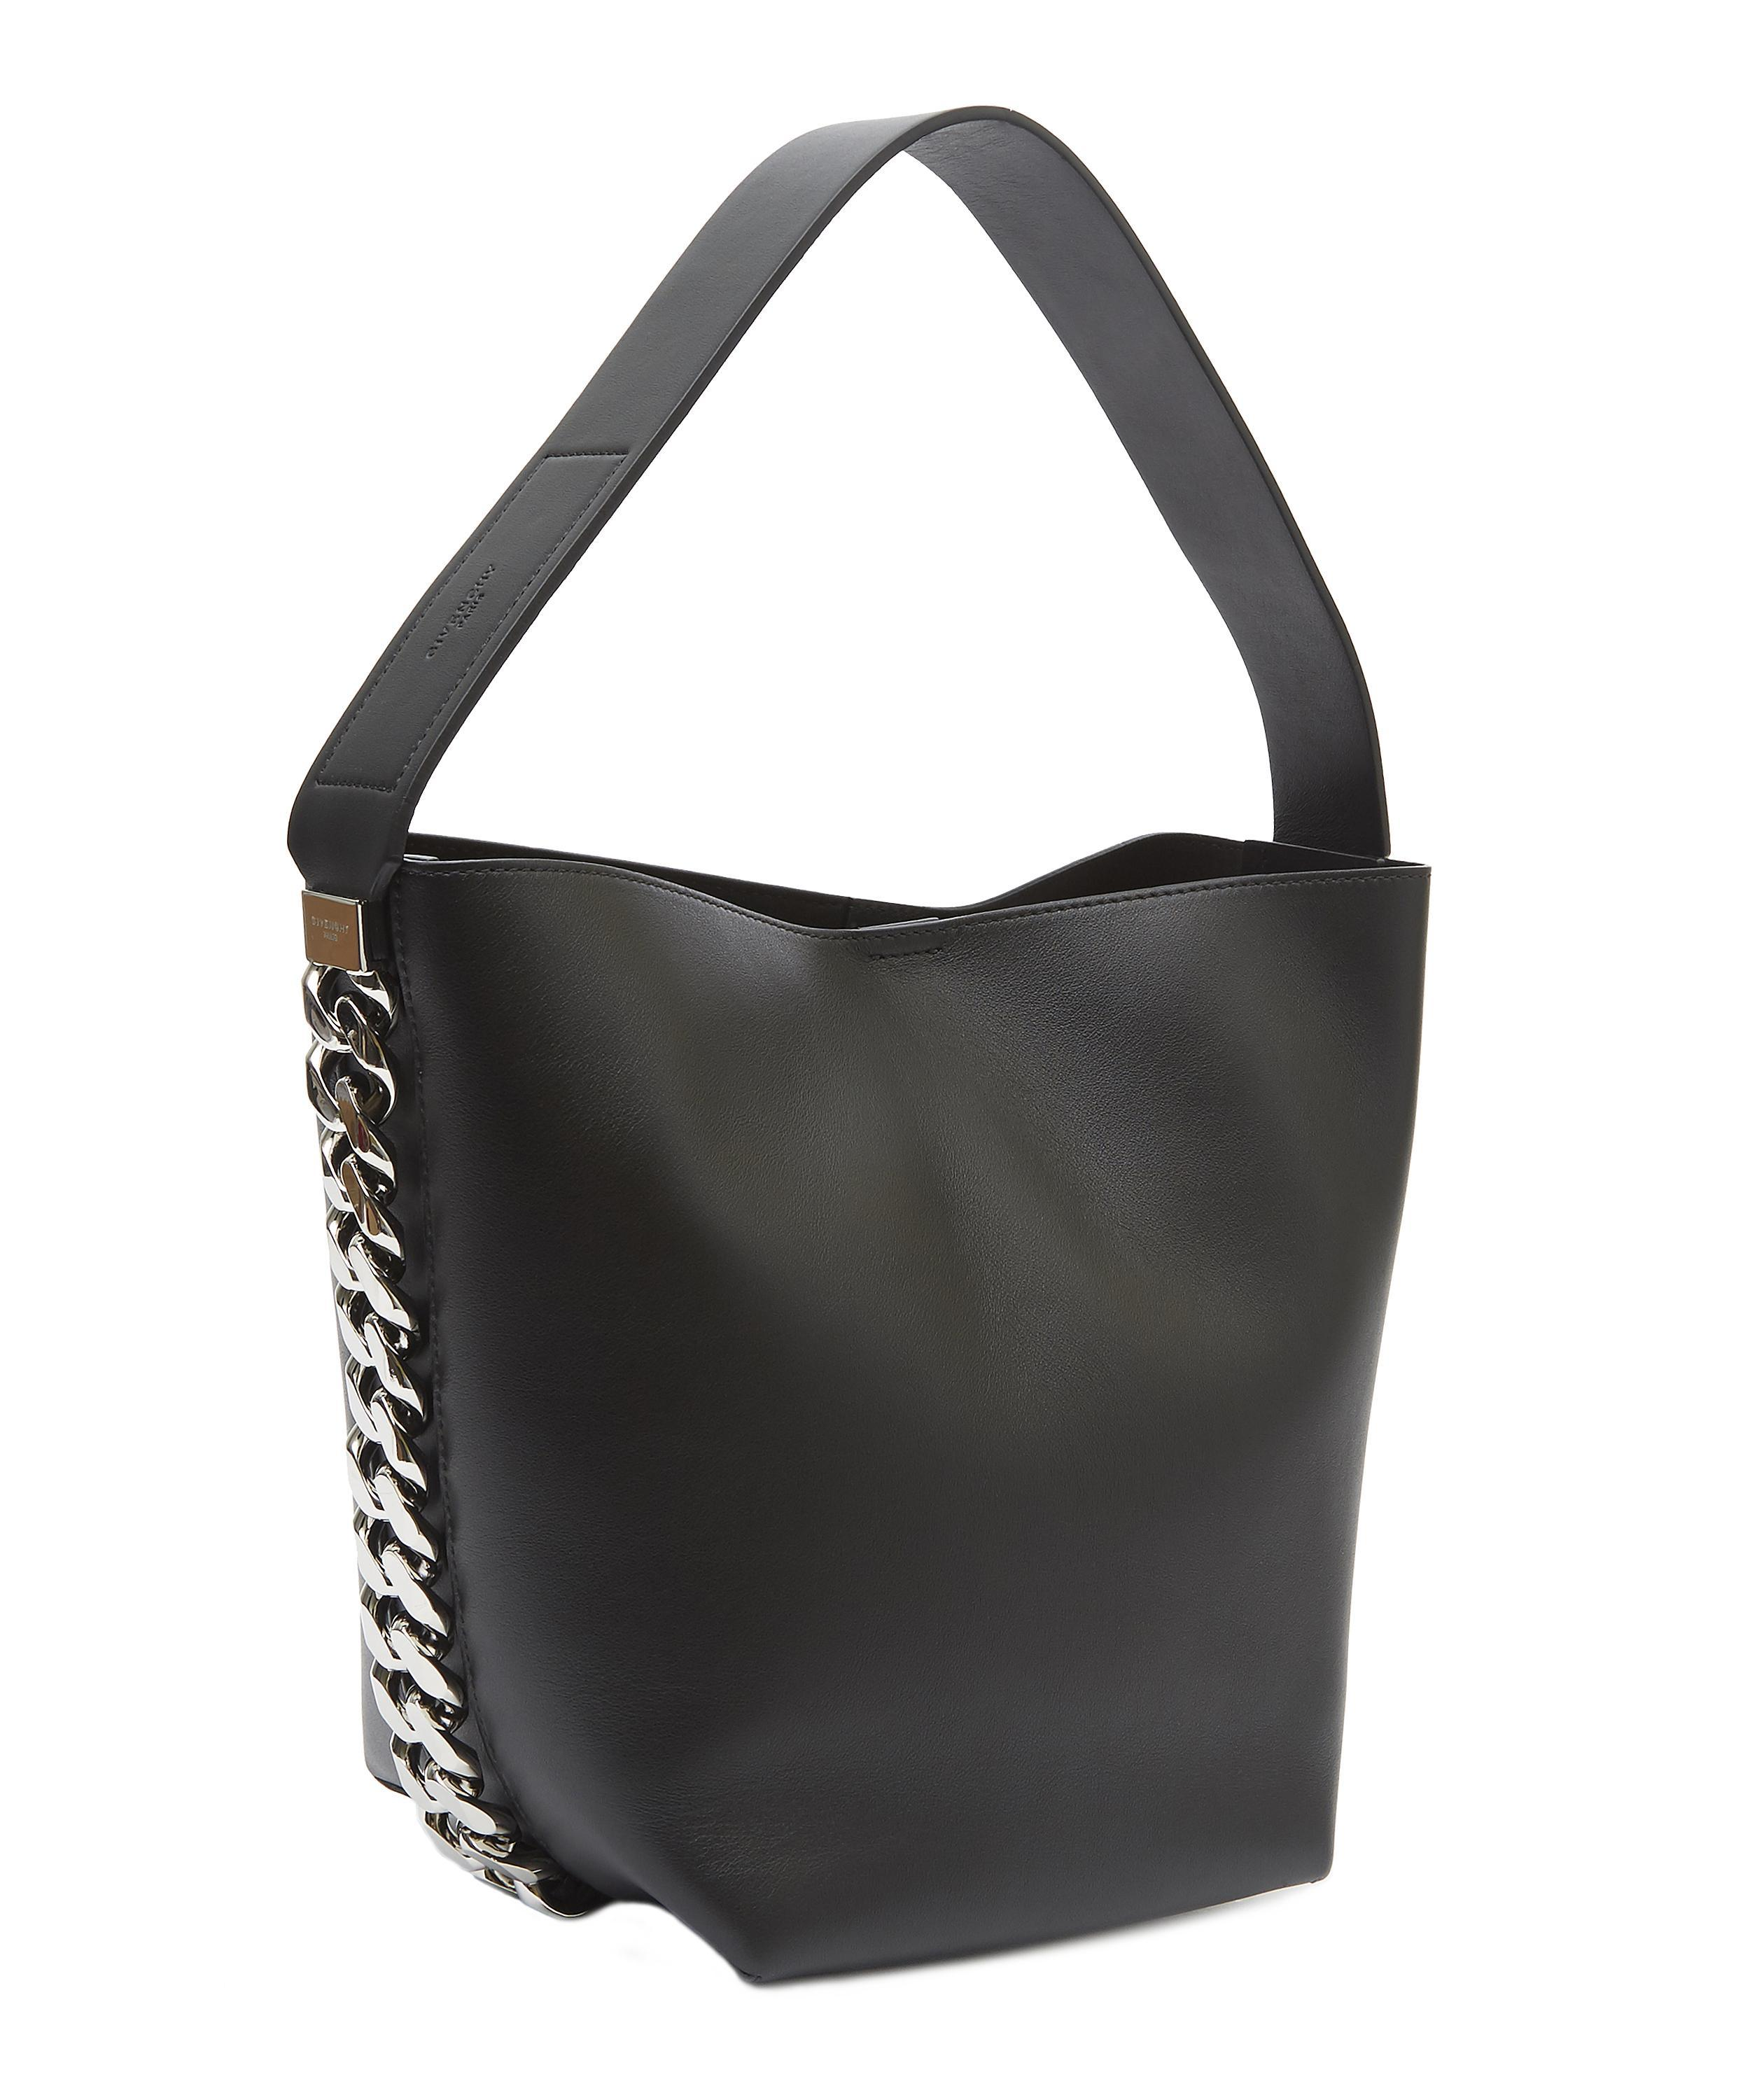 Lyst - Givenchy Infinity Chain Calf Leather Bucket Bag in Black f3fc02dc8b846